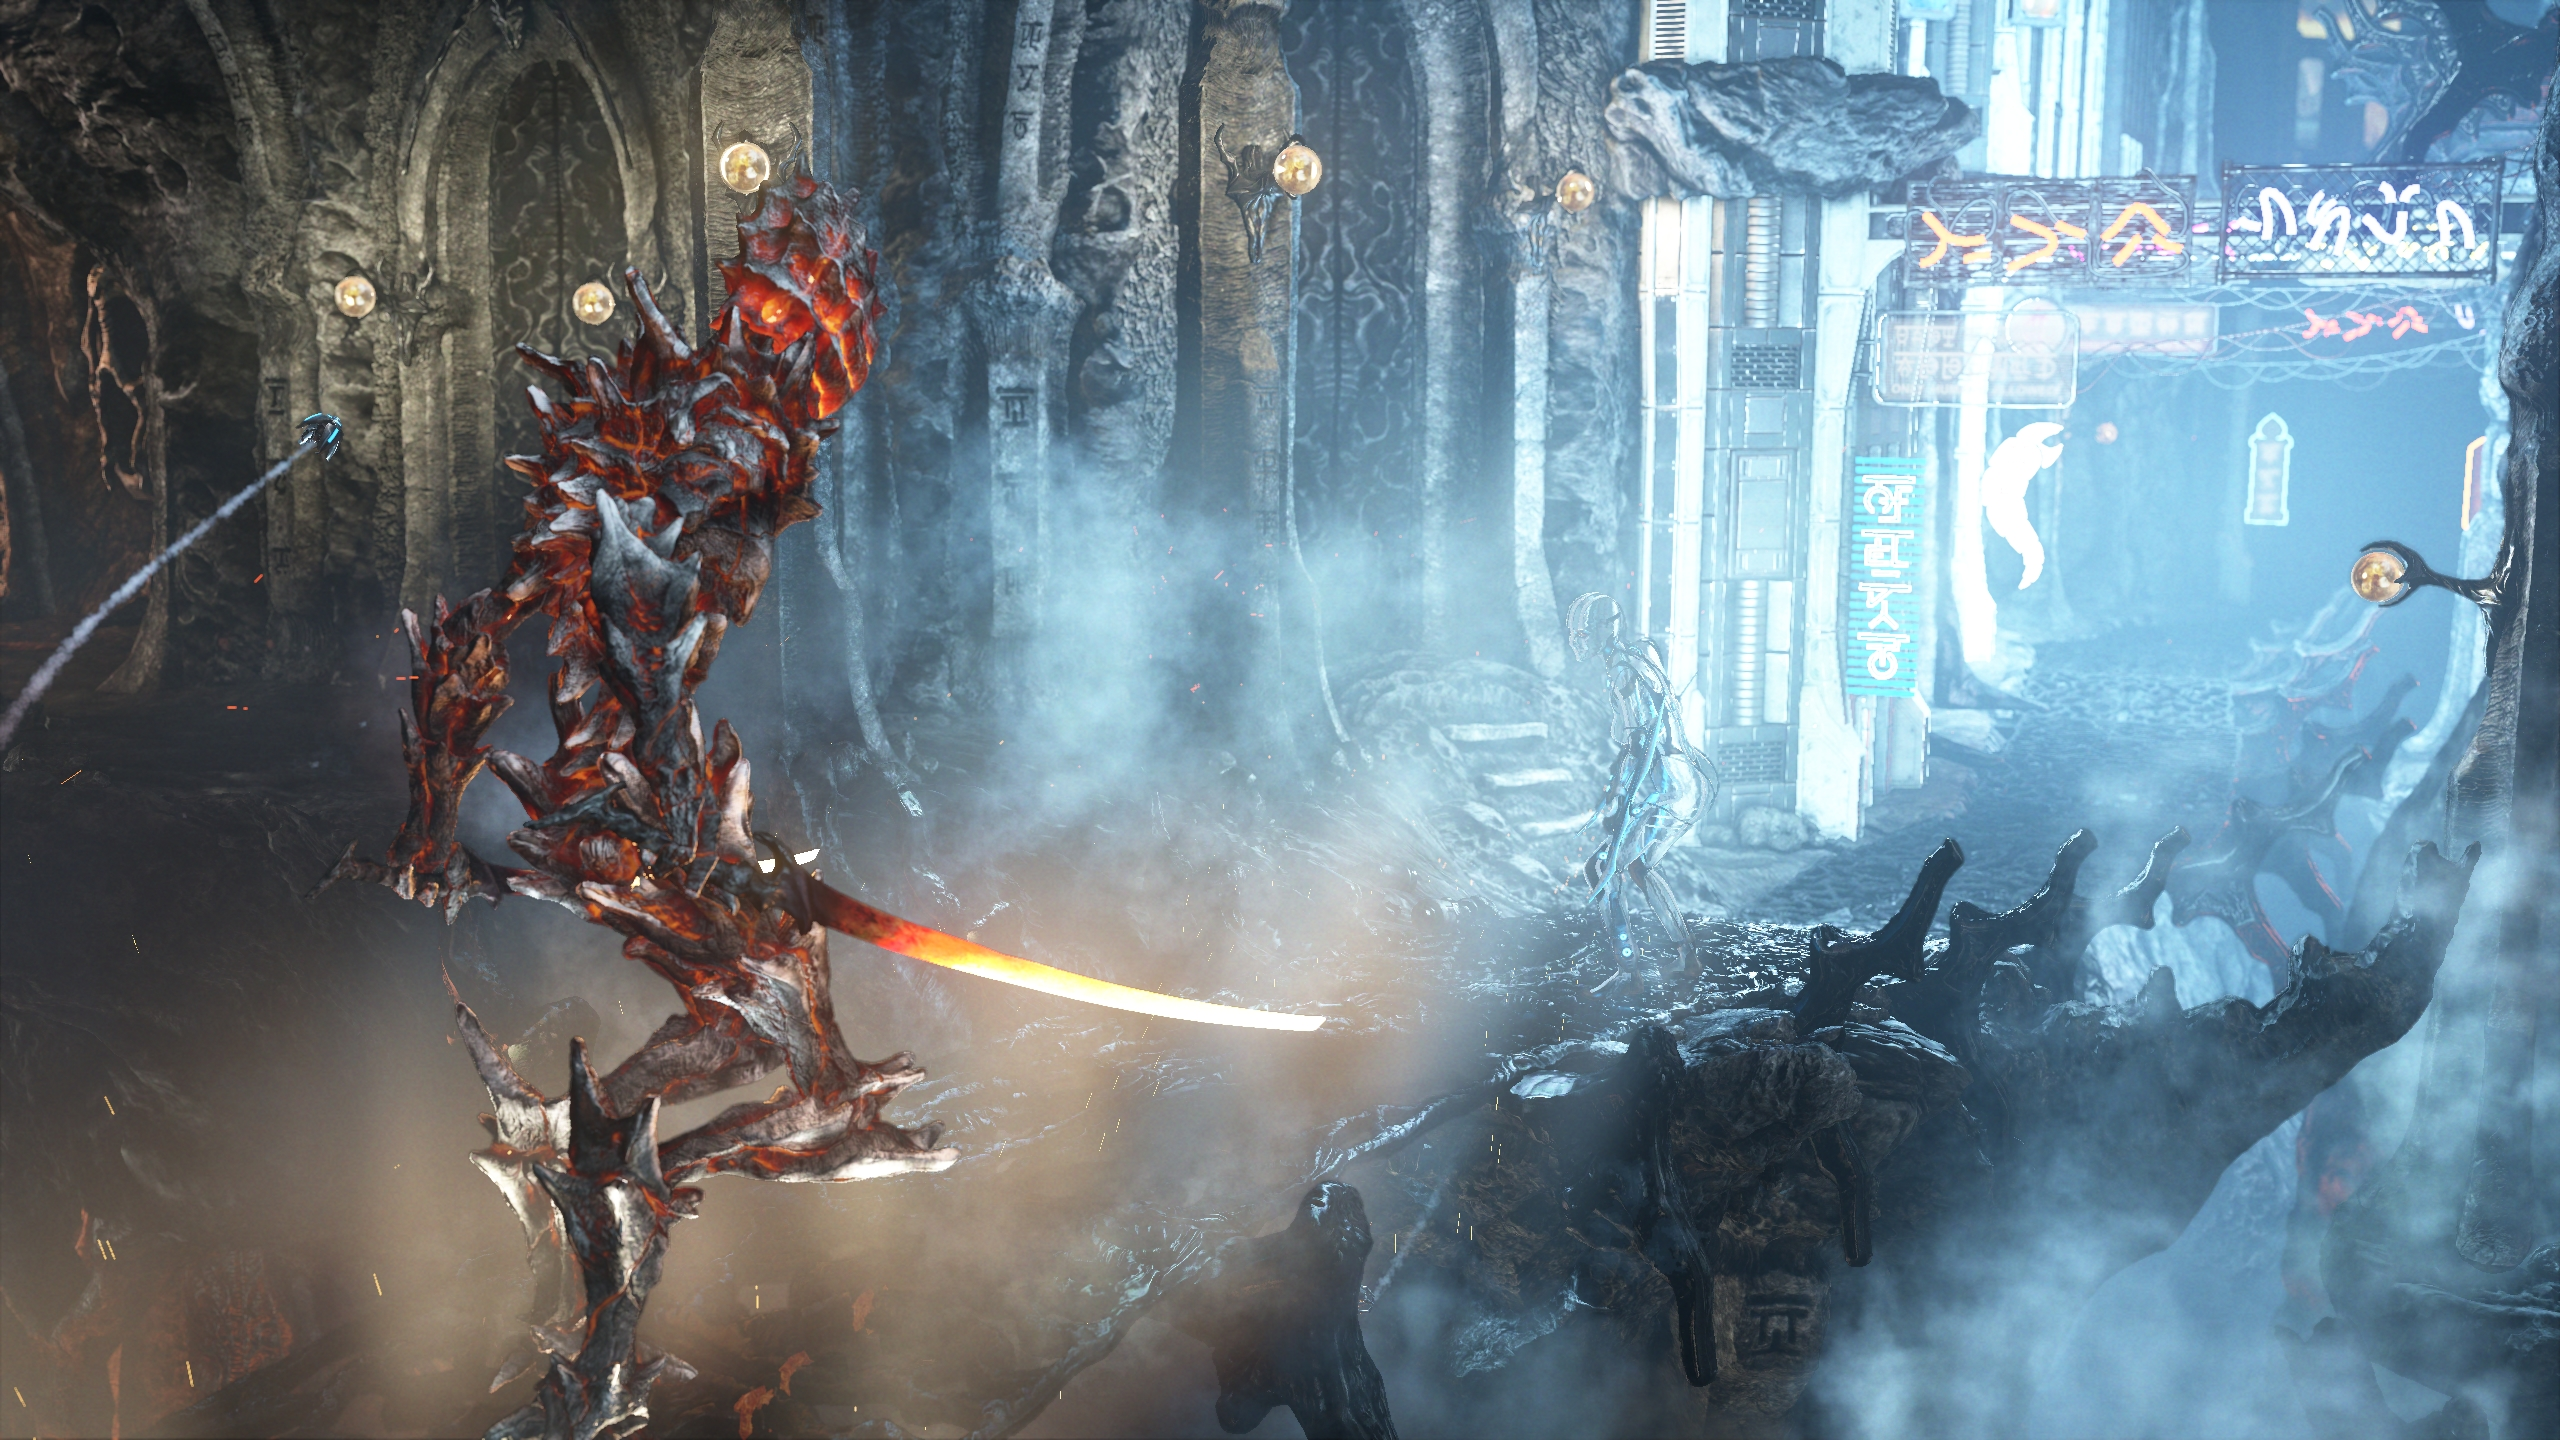 Futuremark Releases The Next Generation 3DMark Benchmark For PC Windows